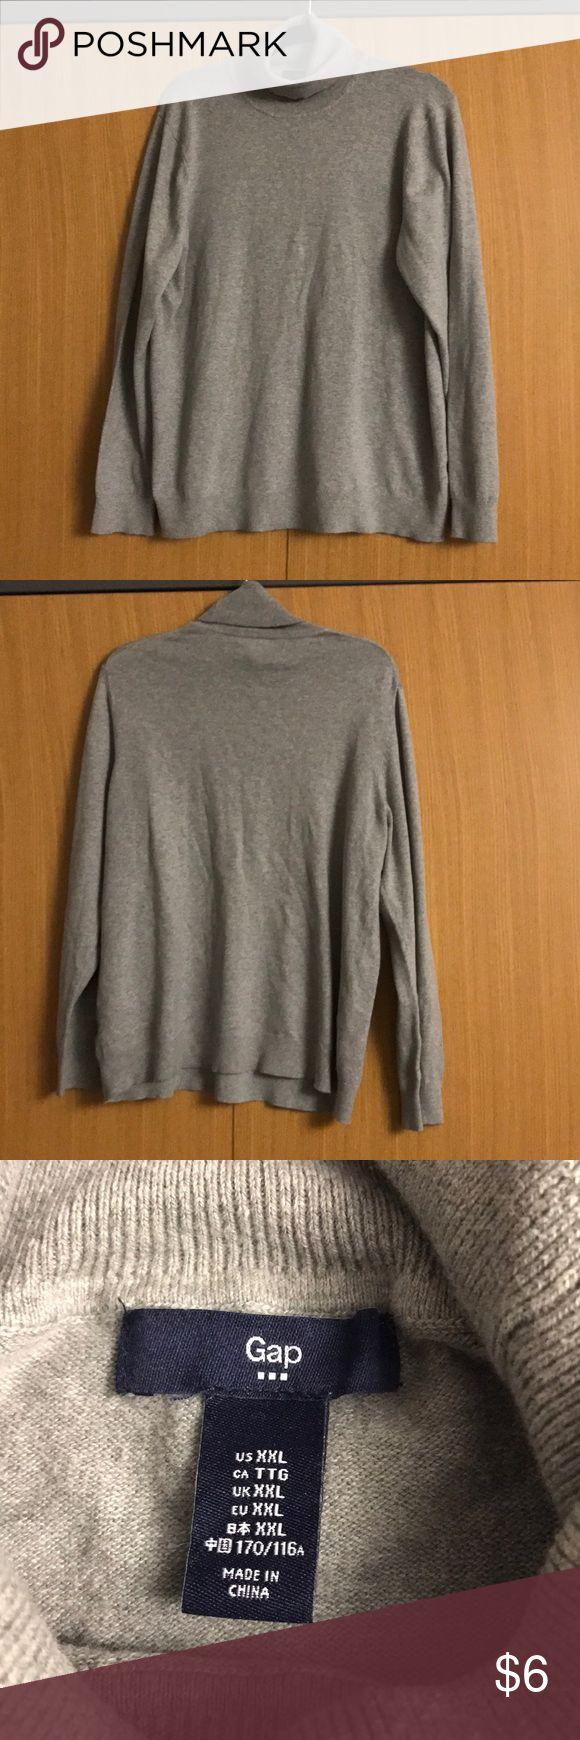 Gap turtleneck sweater Gap turtleneck sweater, heather grey, perfect basic piece to go with the latest trends in pants & skirts! Cotton/nylon/spandex, machine wash, pilling at underarms as pictured, initially purchased at Gap Outlet & Factory Store GAP Sweaters Cowl & Turtlenecks